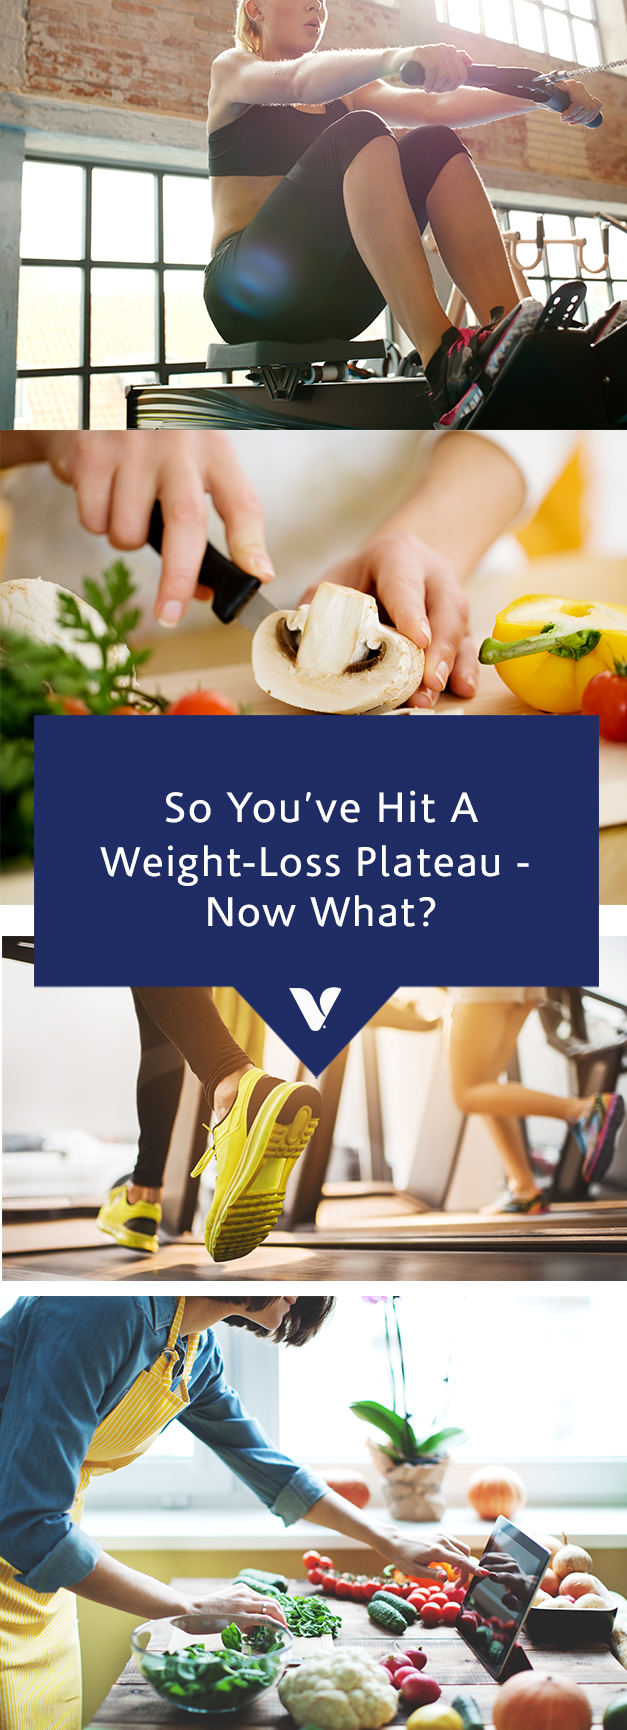 so-youve-hit-a-weight-loss-plateau